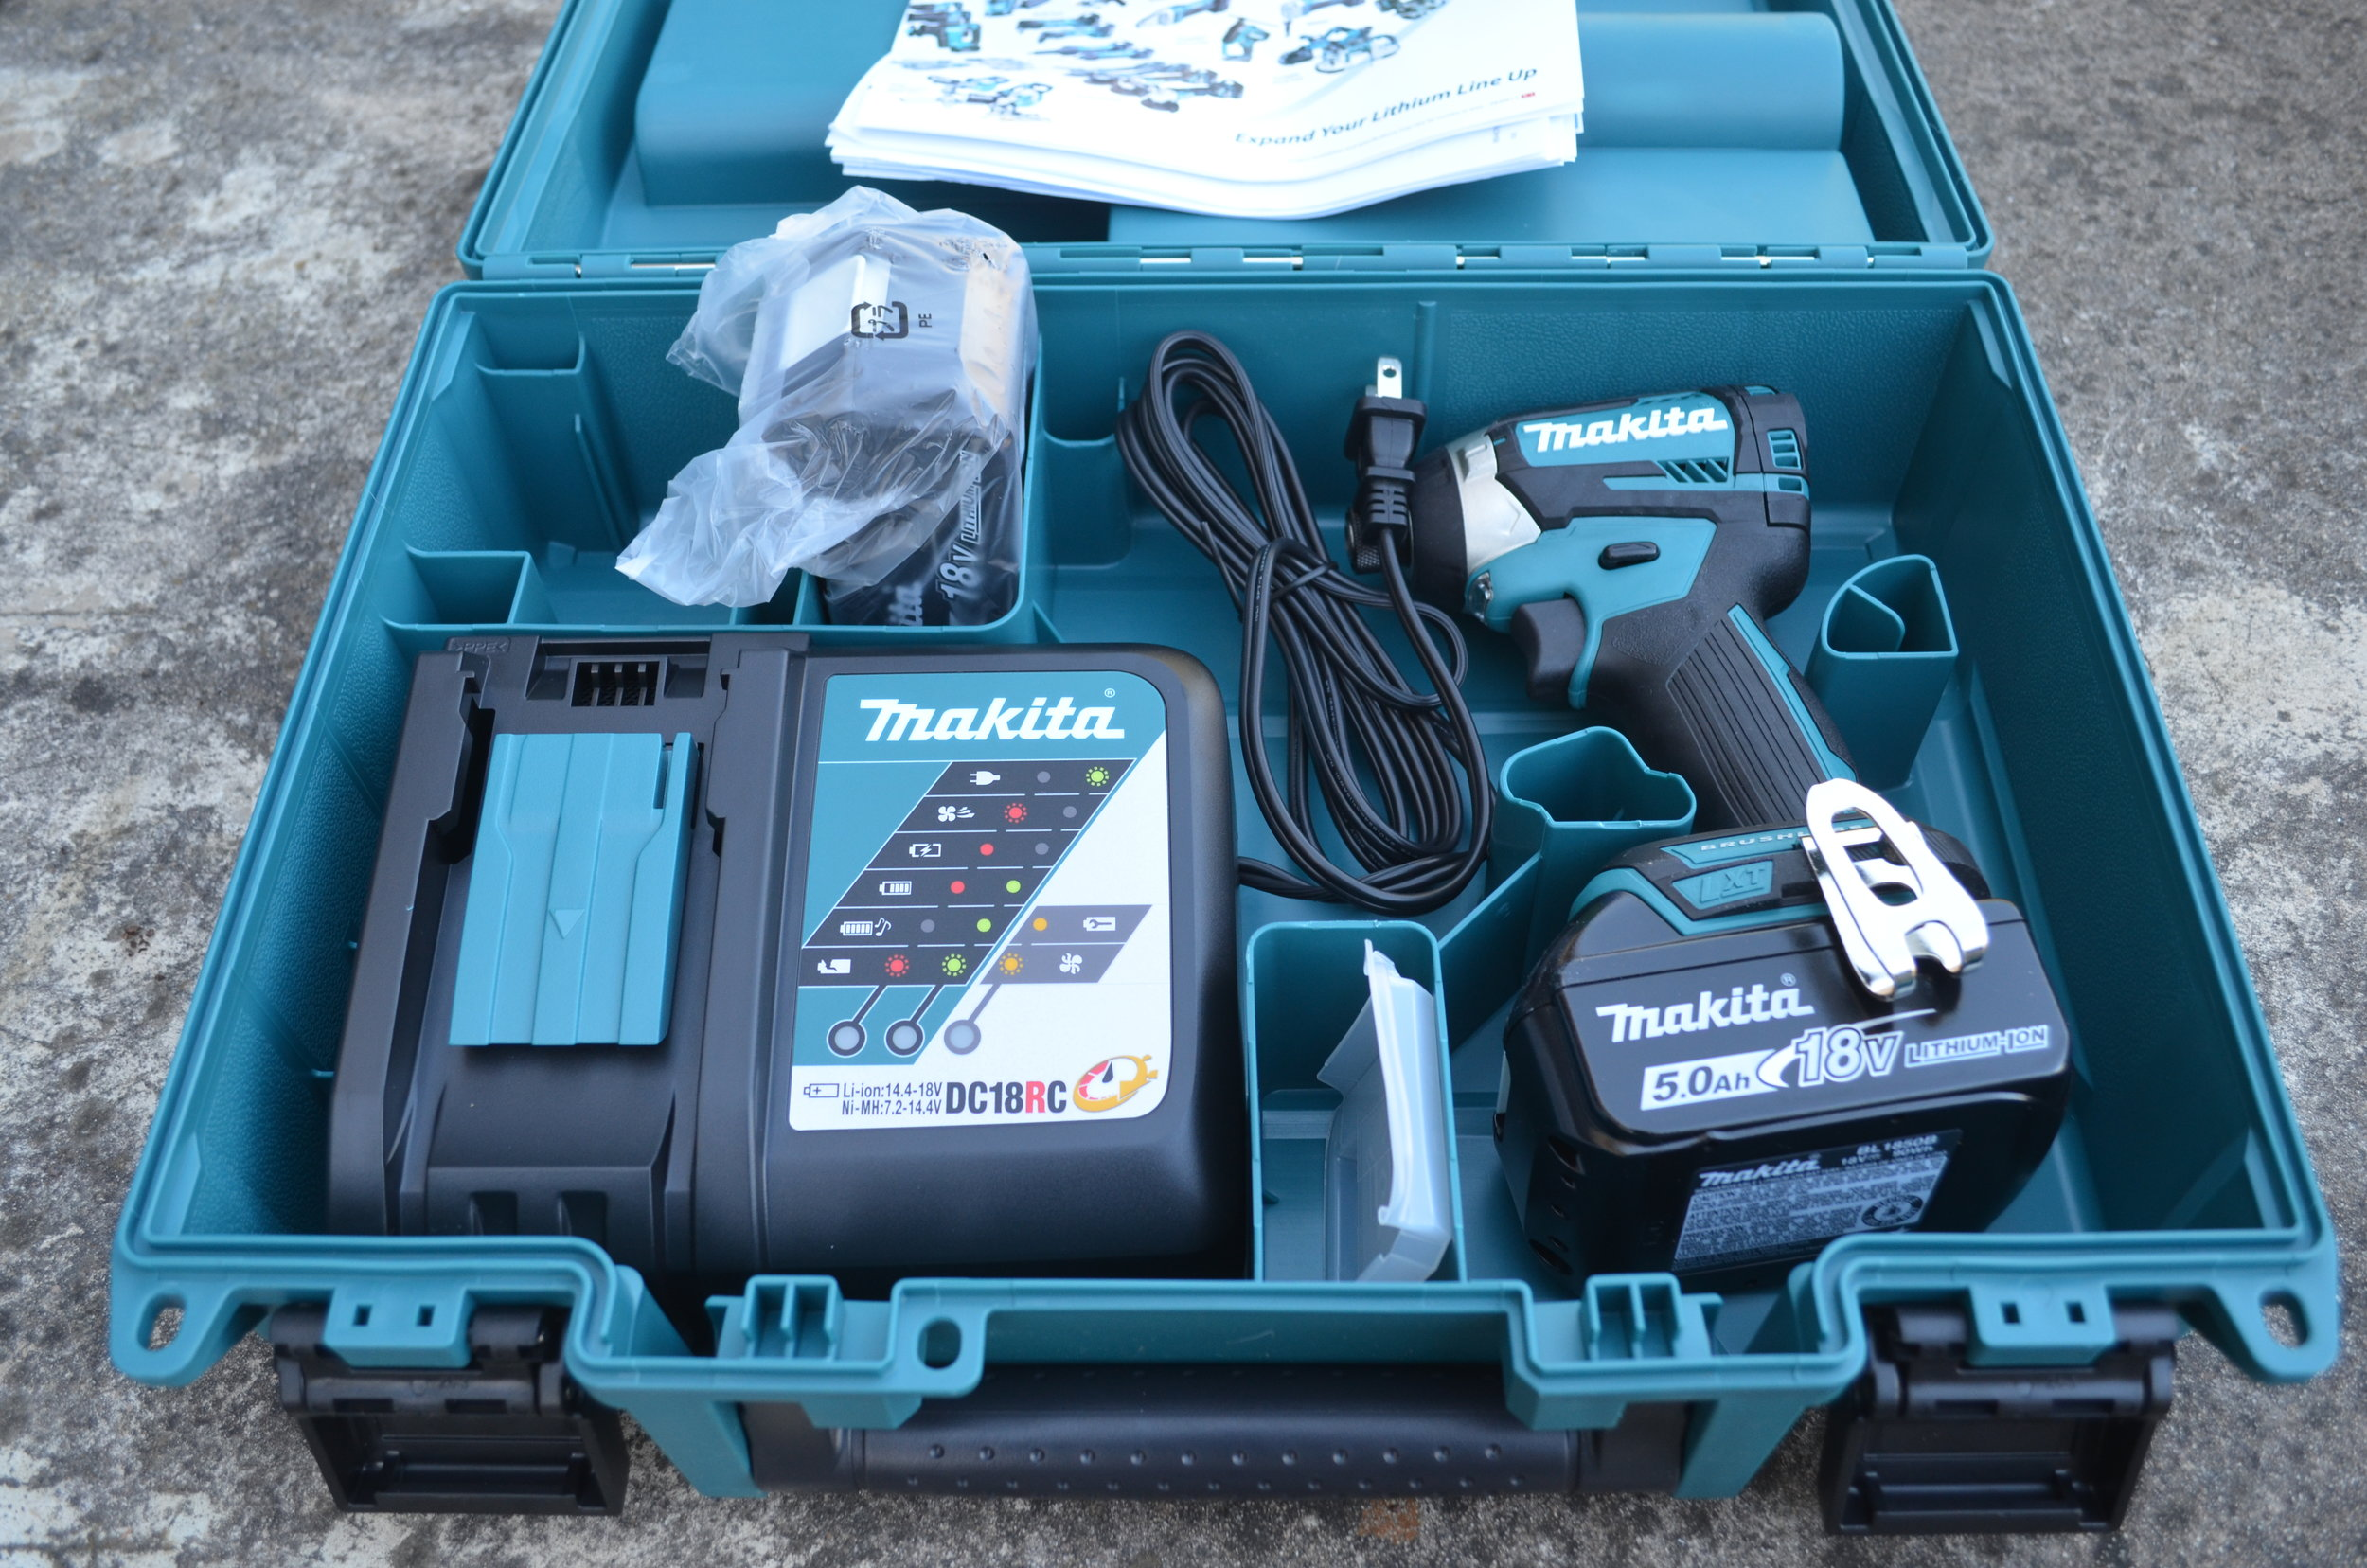 TOOL REVIEW - MAKITA 18V LXT Brushless Cordless Impact Driver with